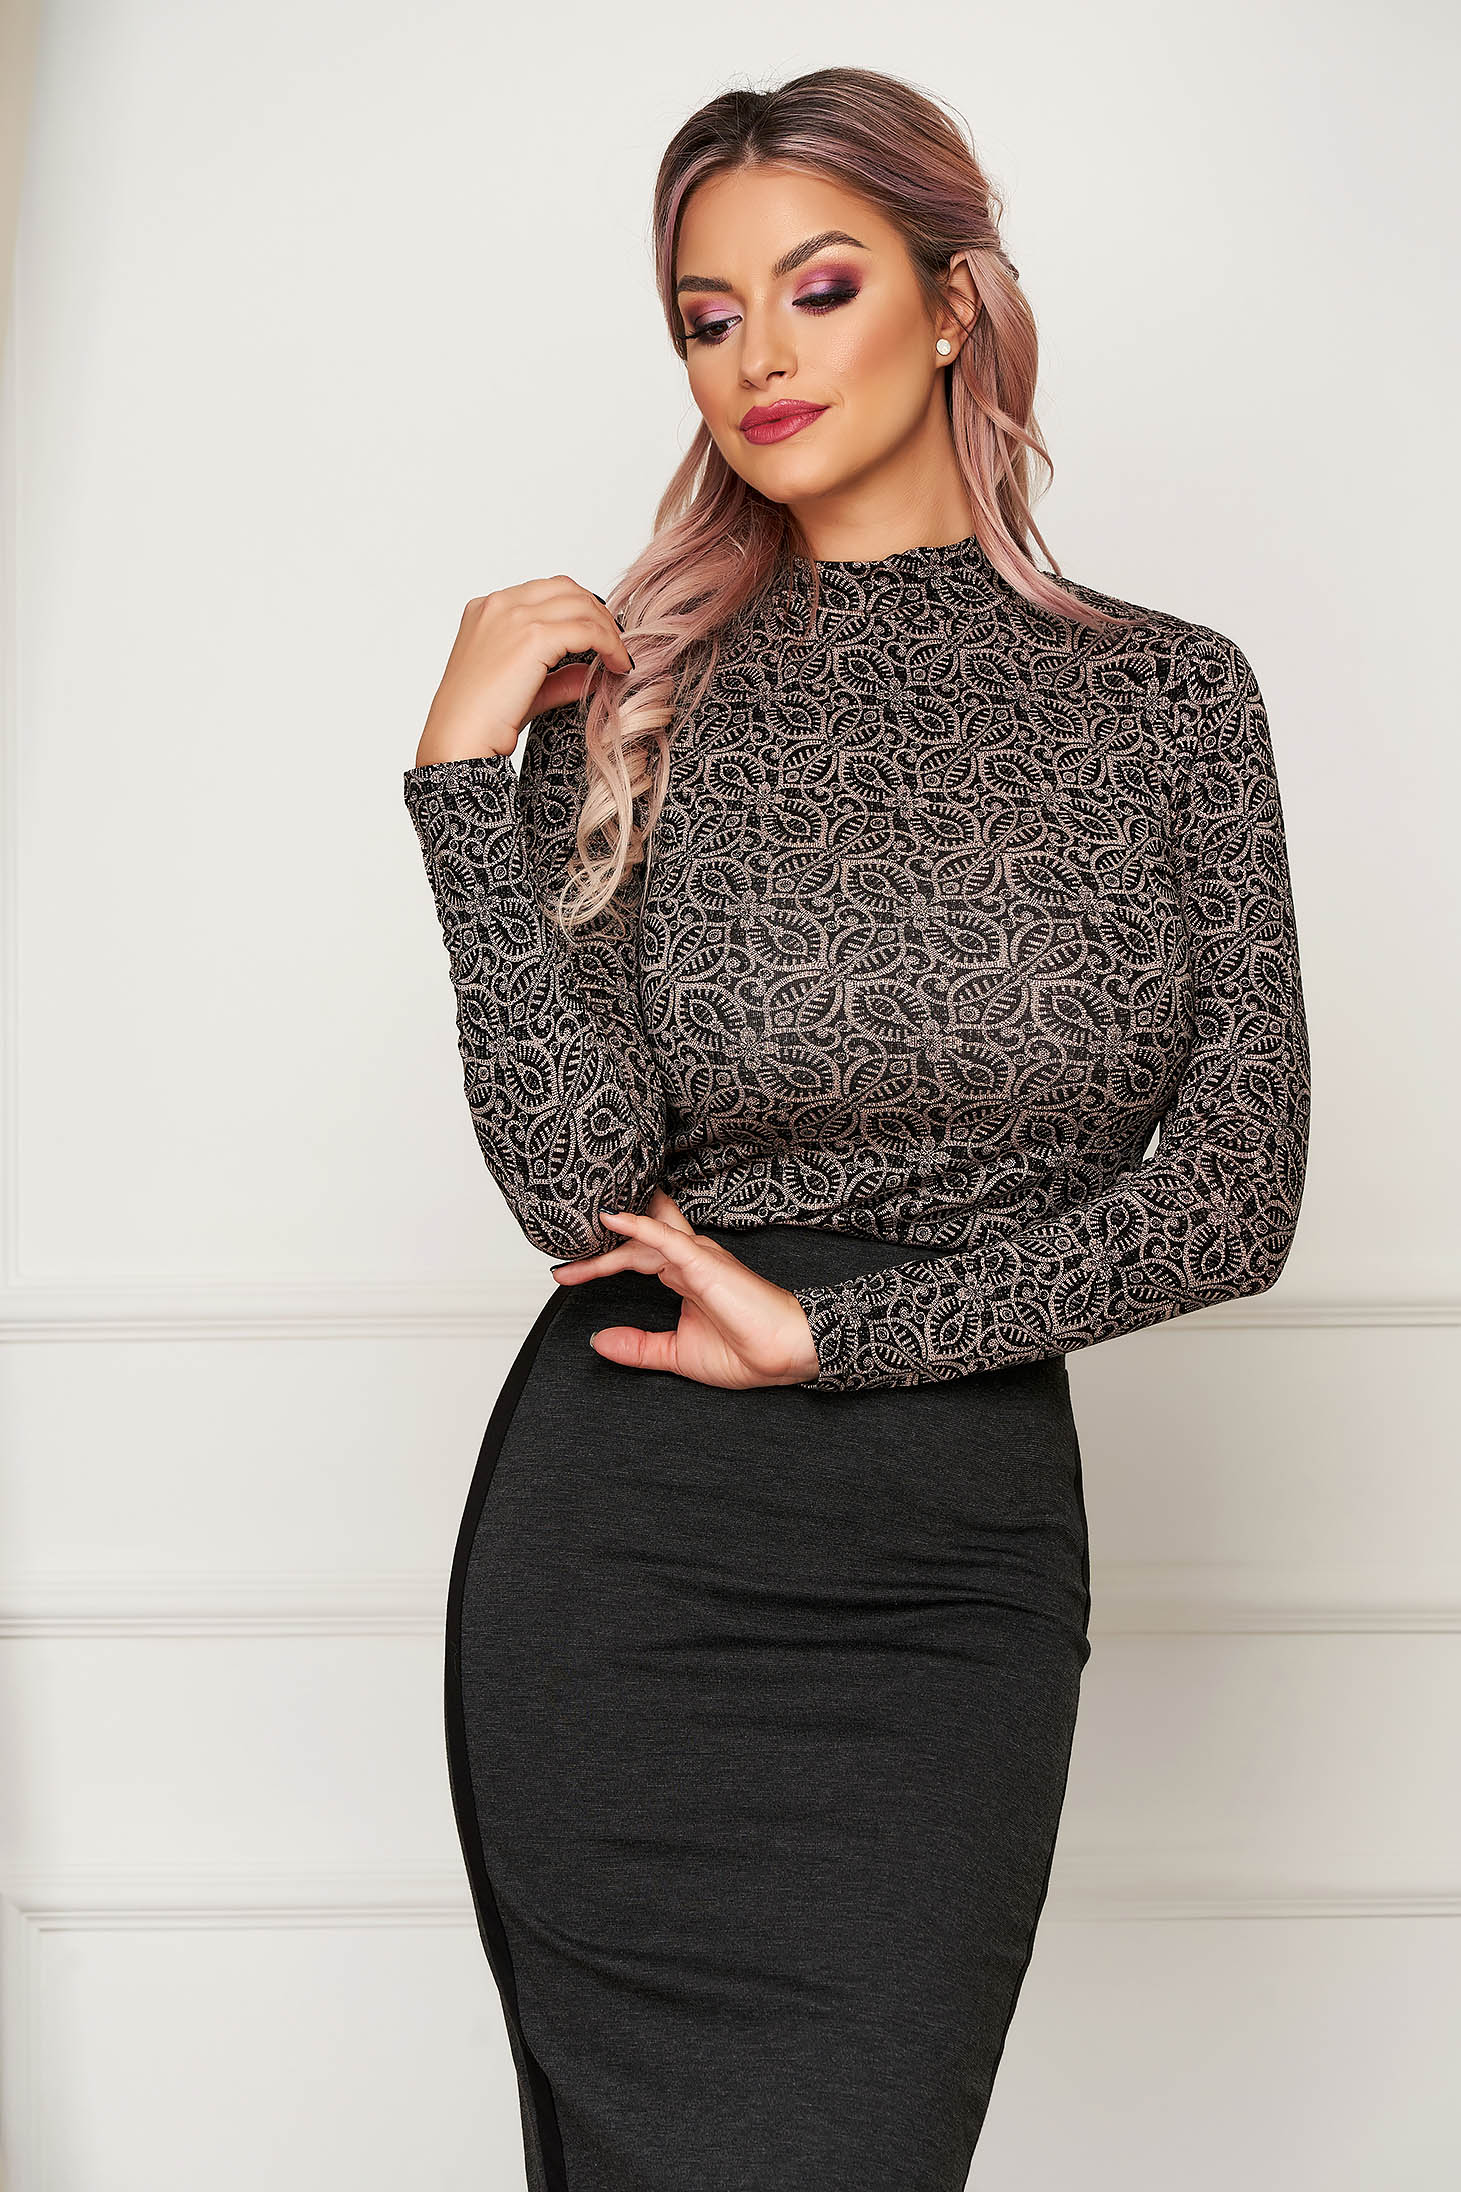 Black sweater casual turtleneck long sleeved with graphic details